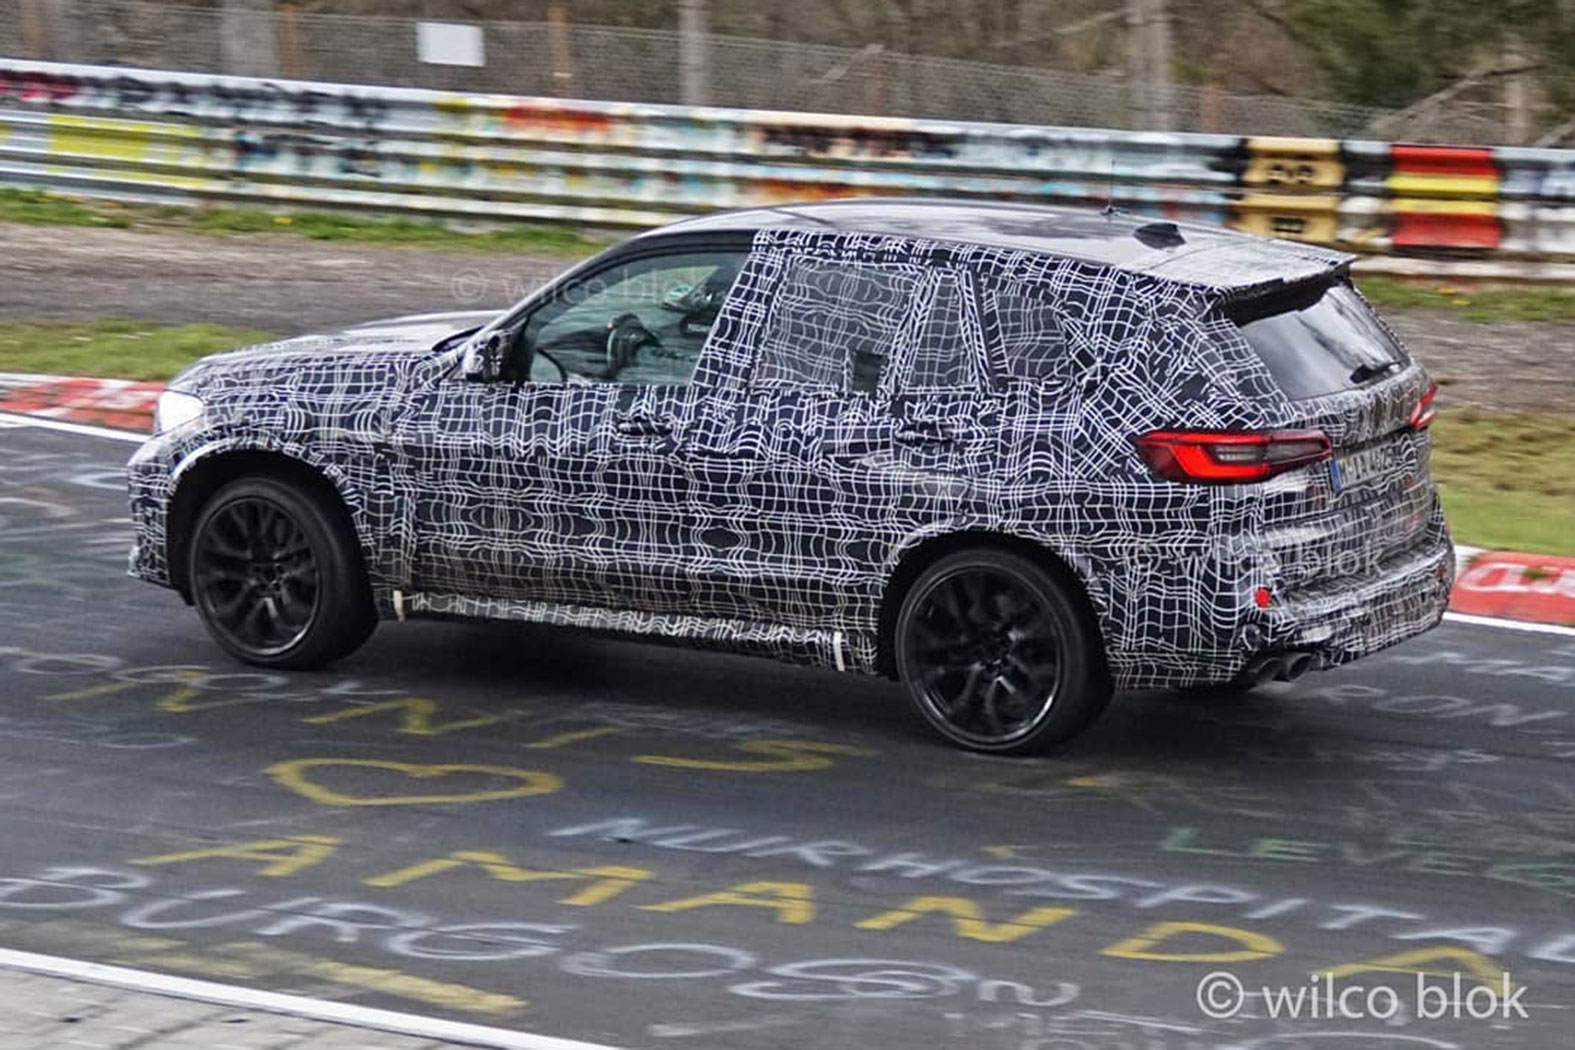 The 2020 Bmw X5 M Gets One Step Closer To Launch Time With Some Laps